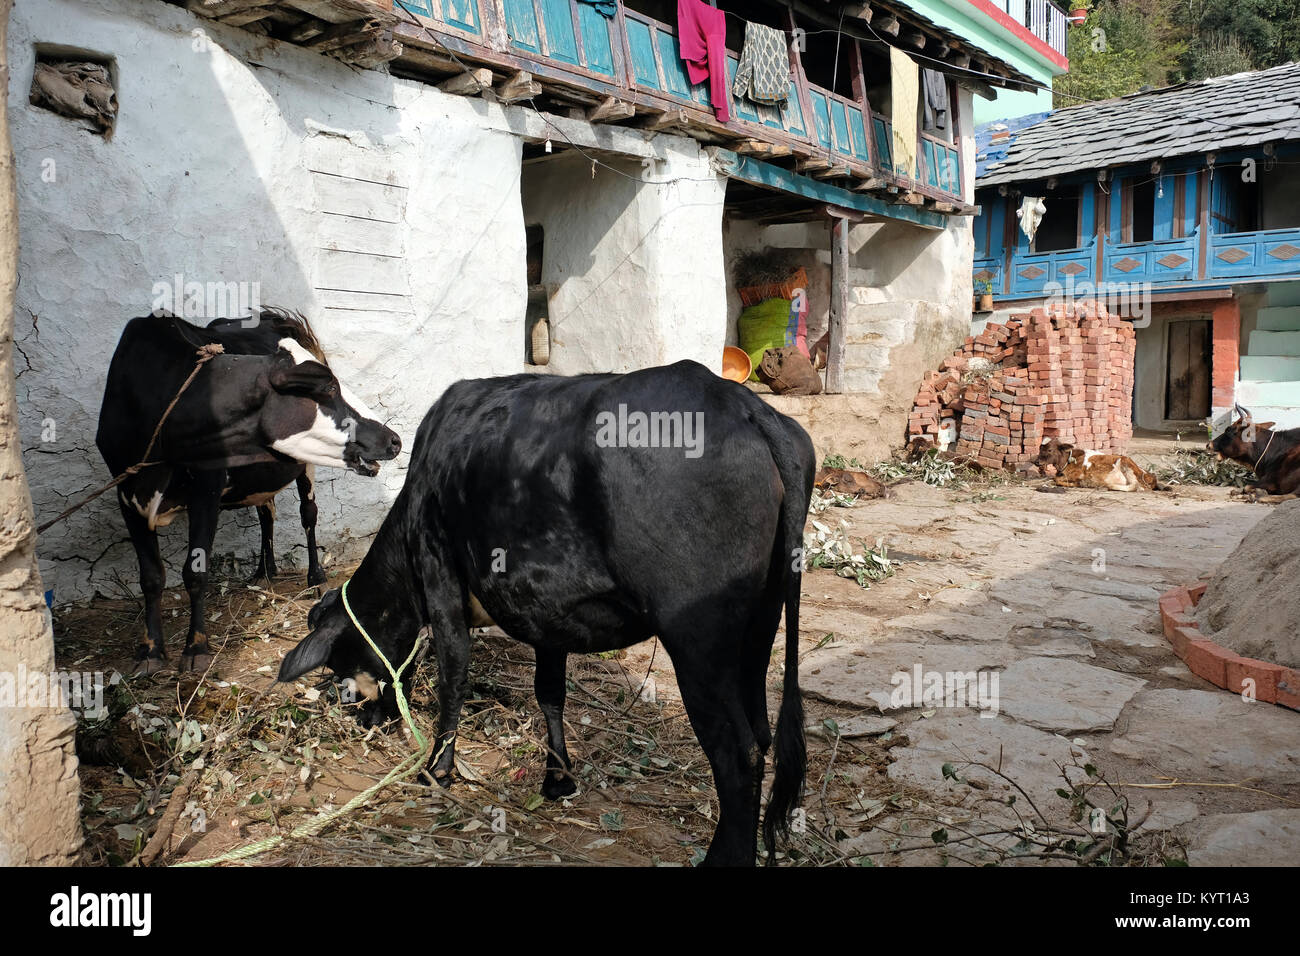 Cattle in the yard of a smallholding in the Himalayan foothills of Northern India Stock Photo